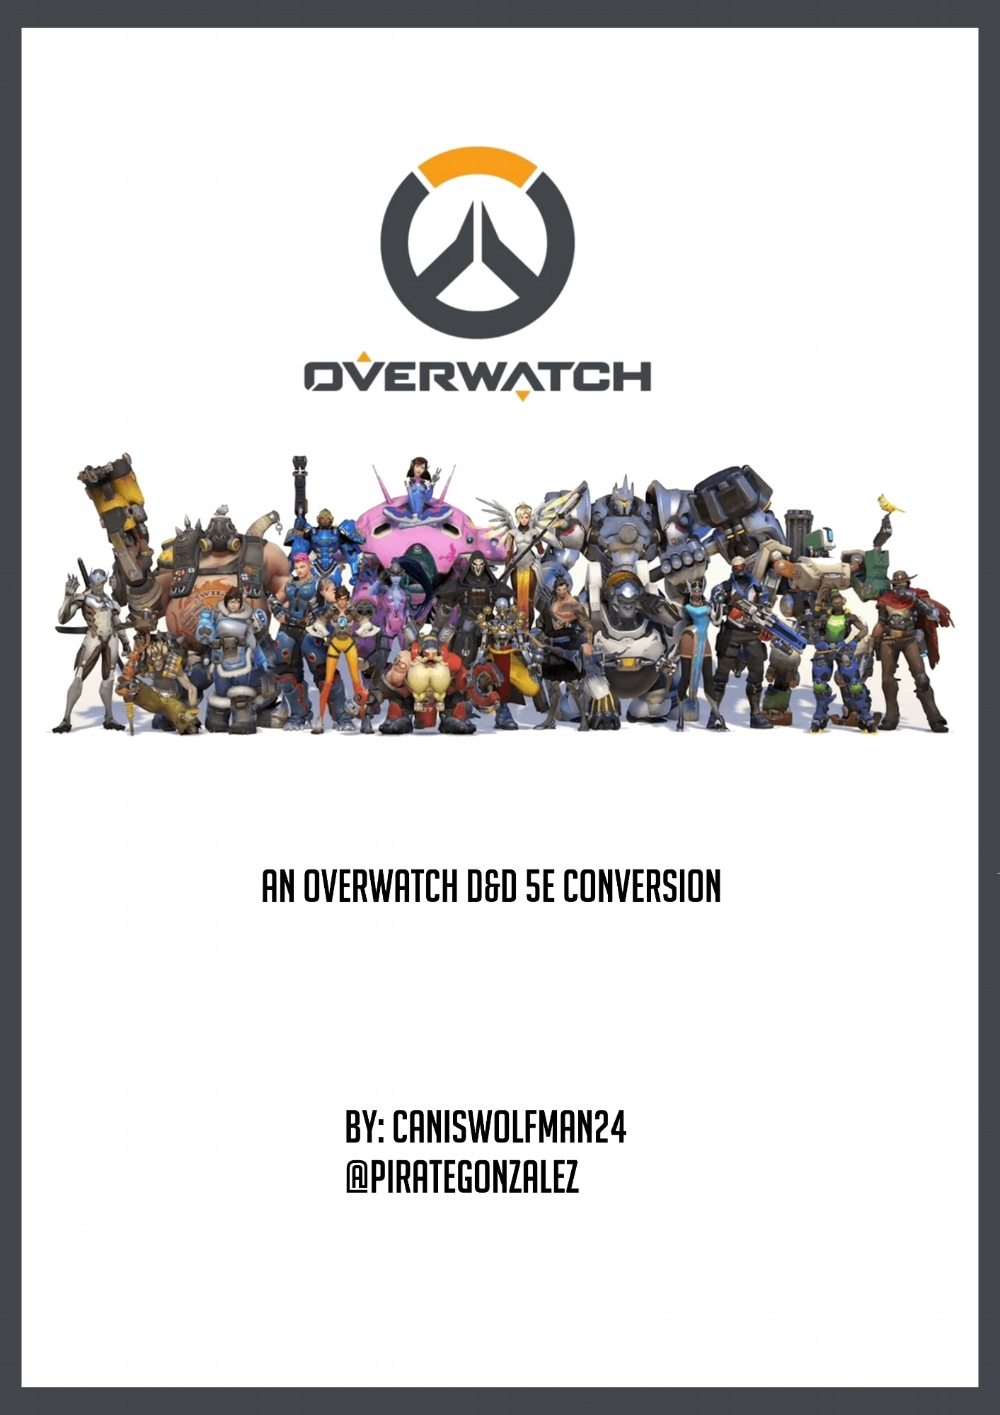 001 overwatch cover.jpg